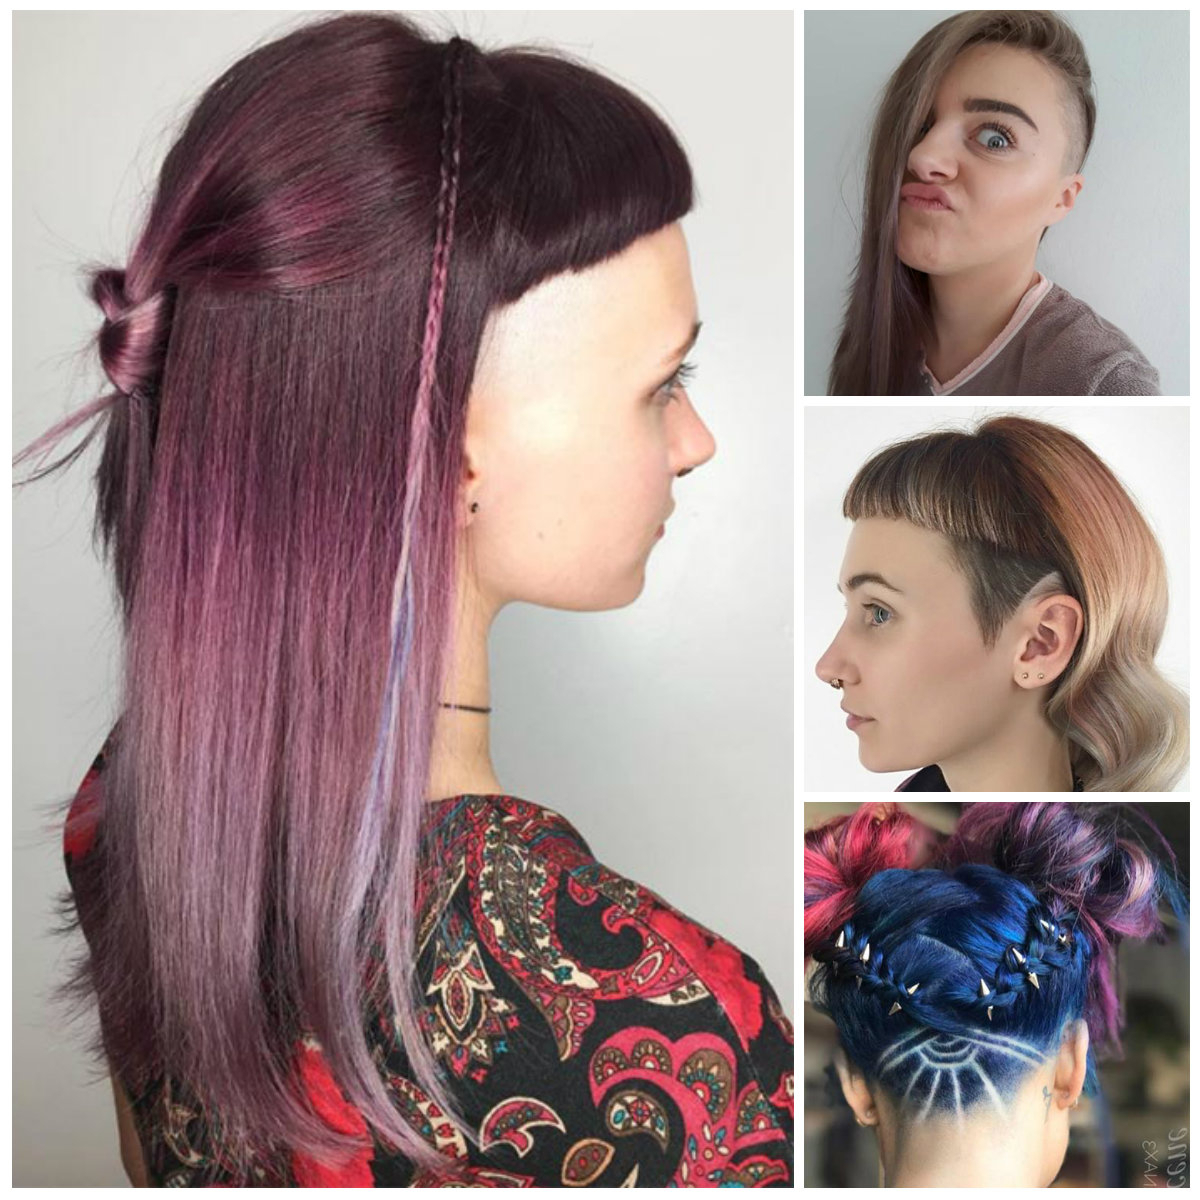 2019 Daring Color And Movement Hairstyles Within 2019 Haircuts, Hairstyles And Hair Colors (View 16 of 20)